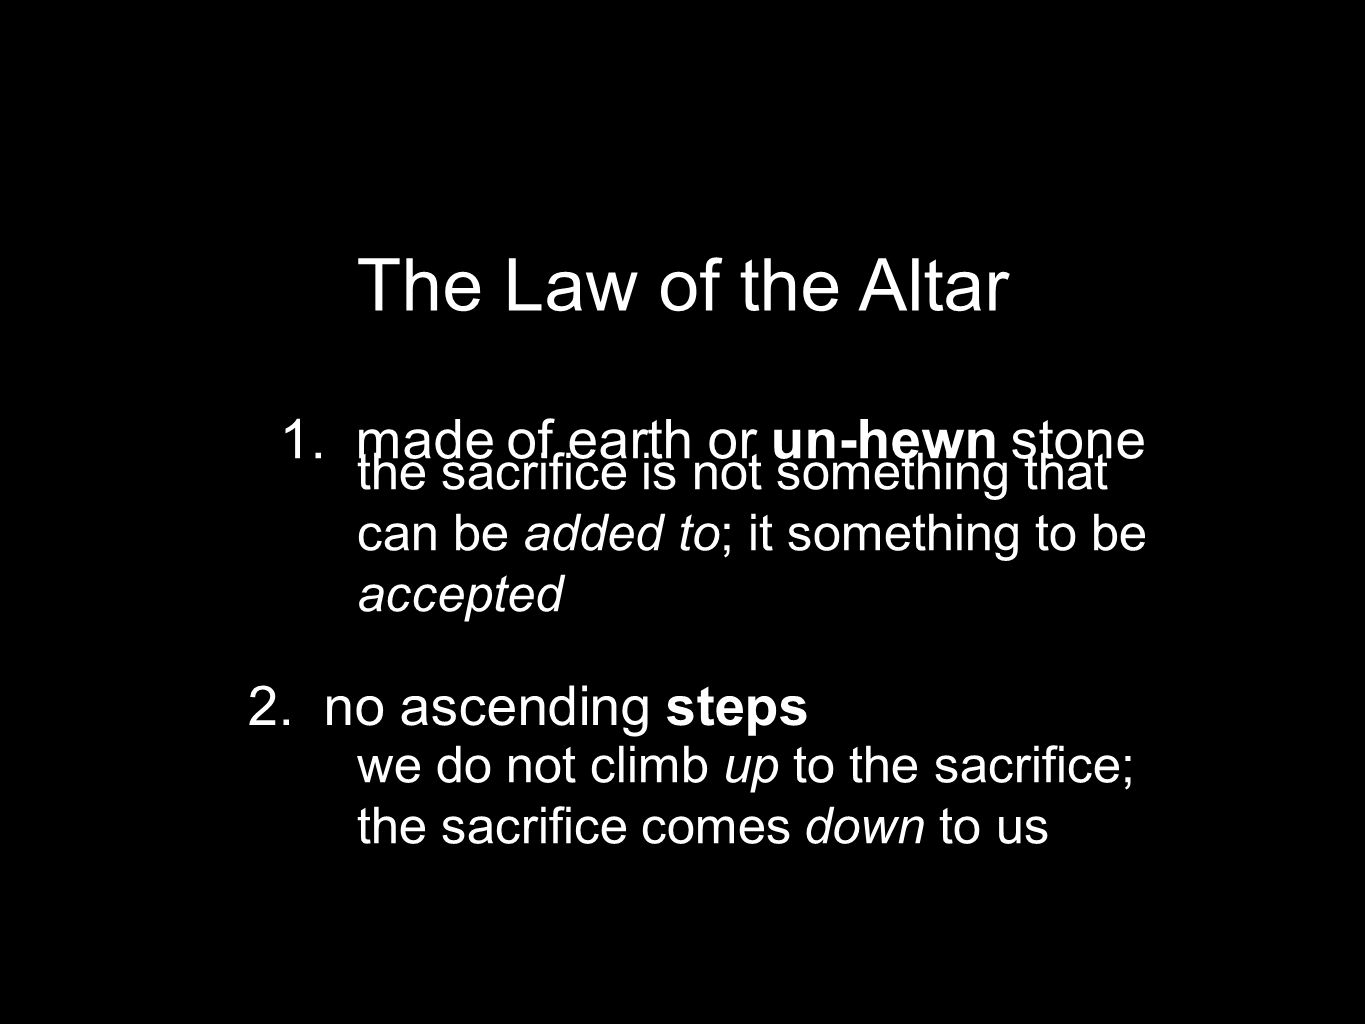 1.made of earth or un-hewn stone The Law of the Altar 2.